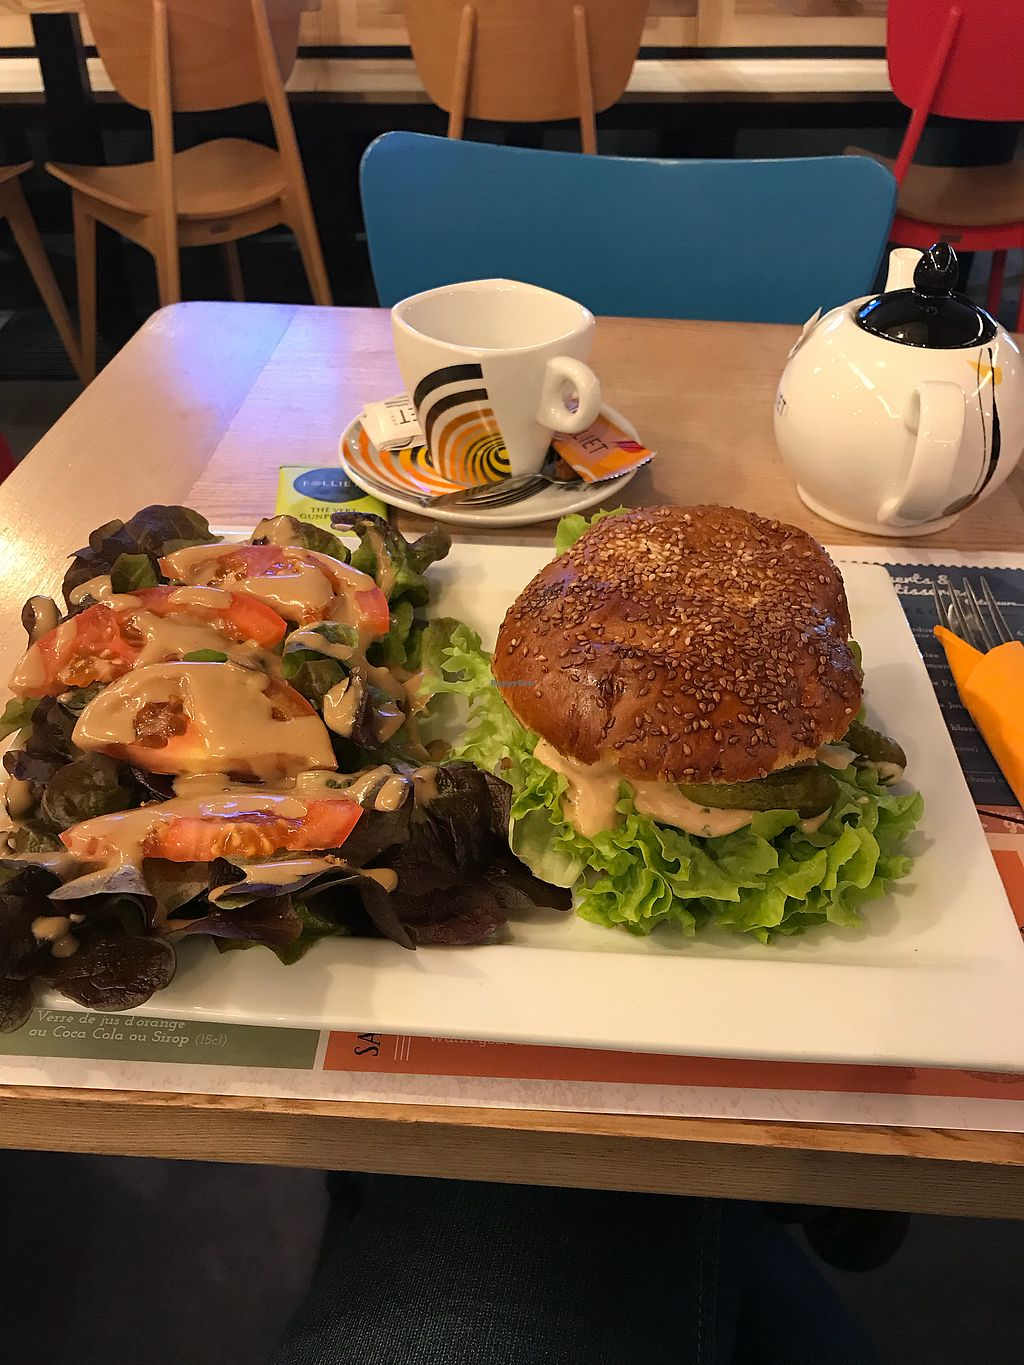 """Photo of Le Tonneau  by <a href=""""/members/profile/doctorjay"""">doctorjay</a> <br/>Veggie burger with salad <br/> February 20, 2018  - <a href='/contact/abuse/image/61830/361740'>Report</a>"""